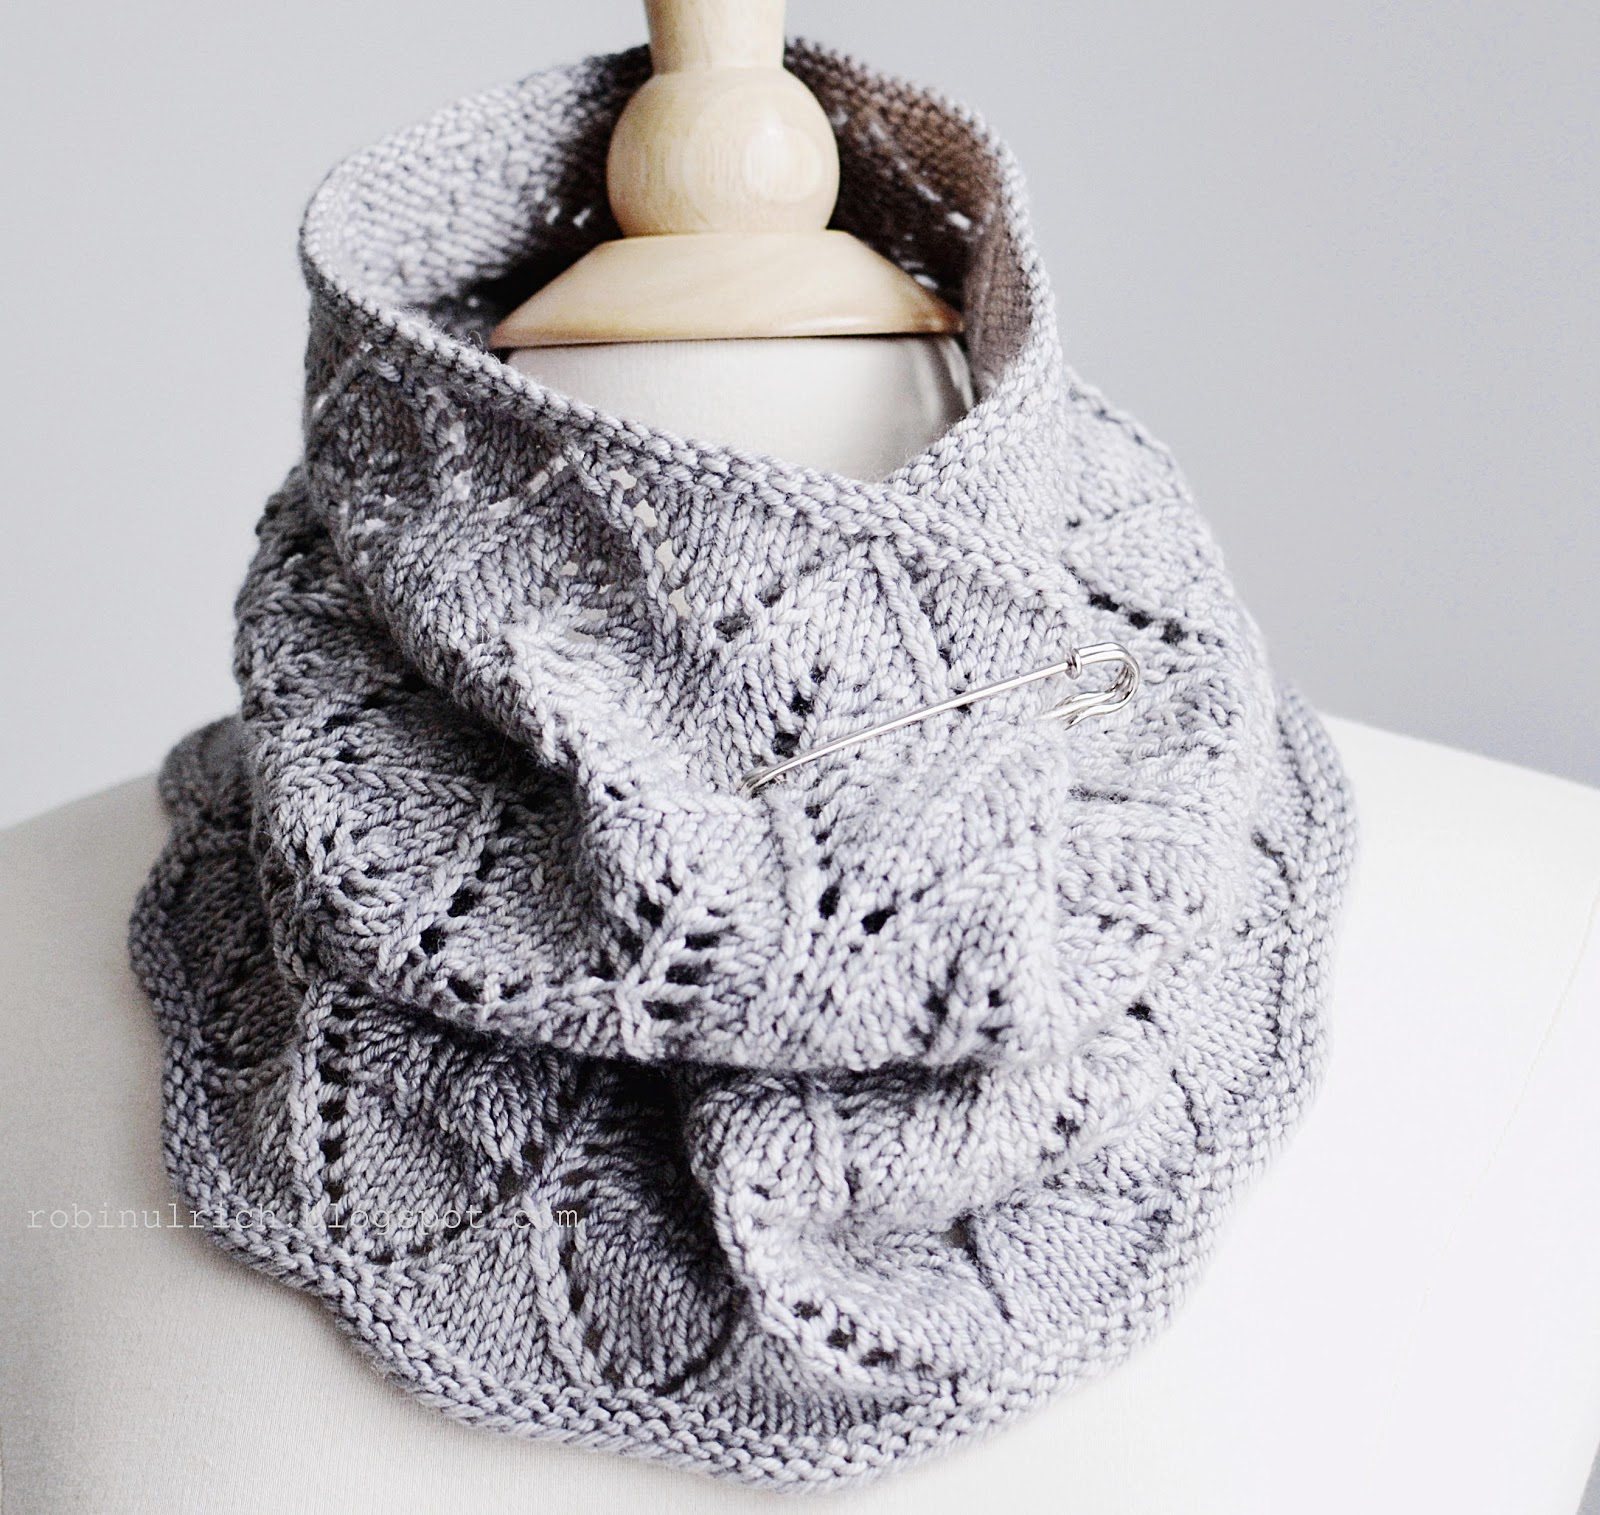 Robin Ulrich Studio: New Knitting Pattern - Greyhaven